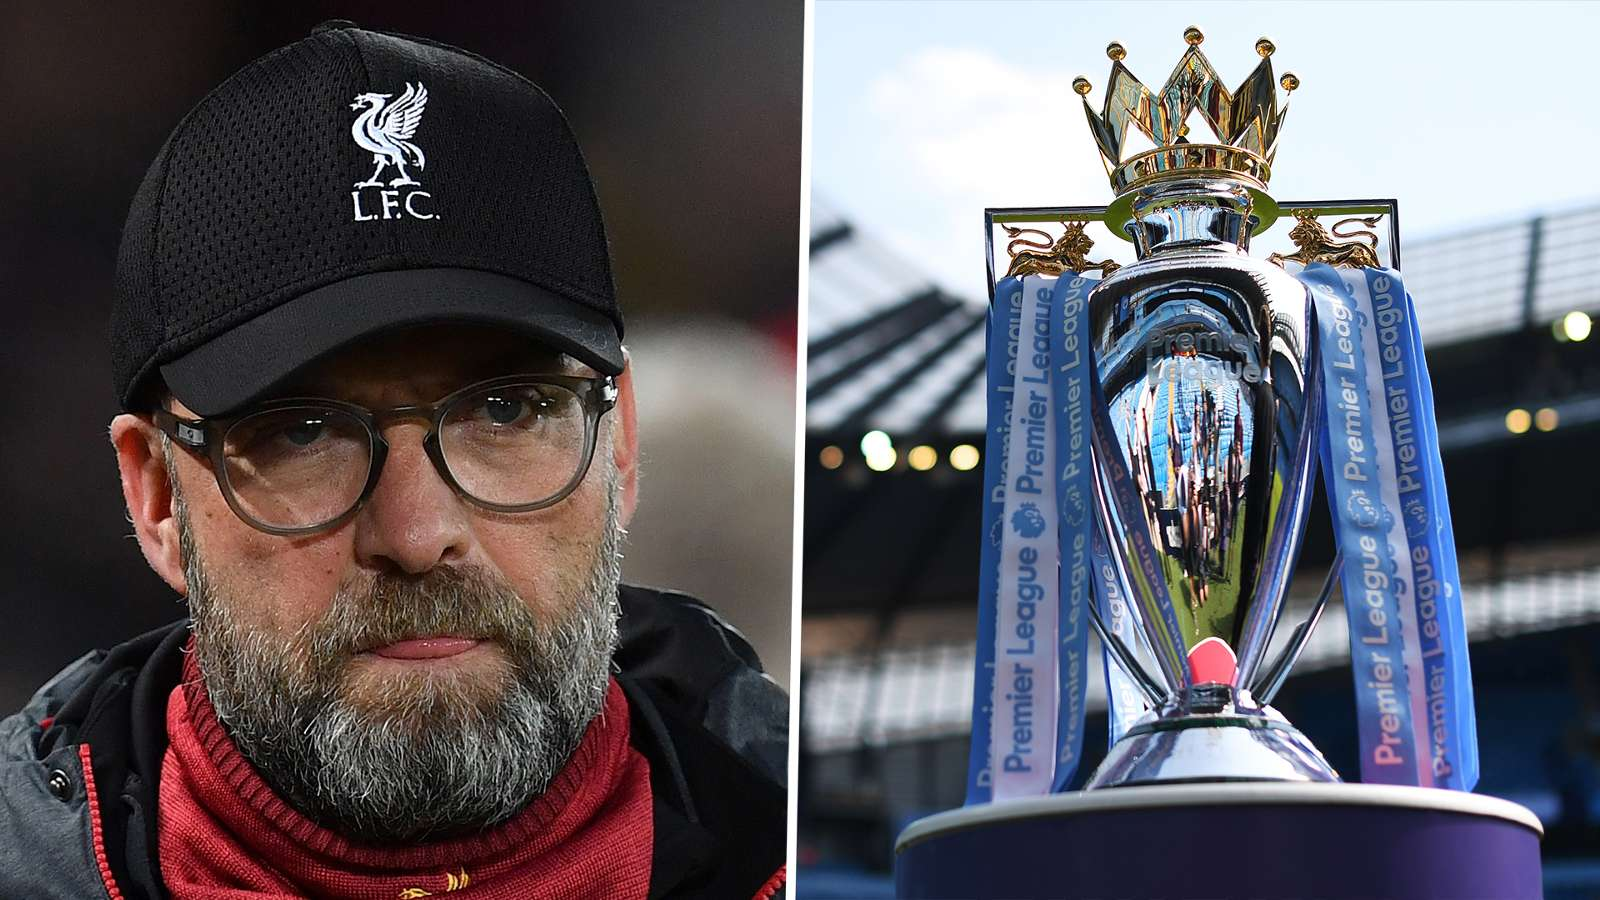 Jurgen Klopp, Premier League trophy